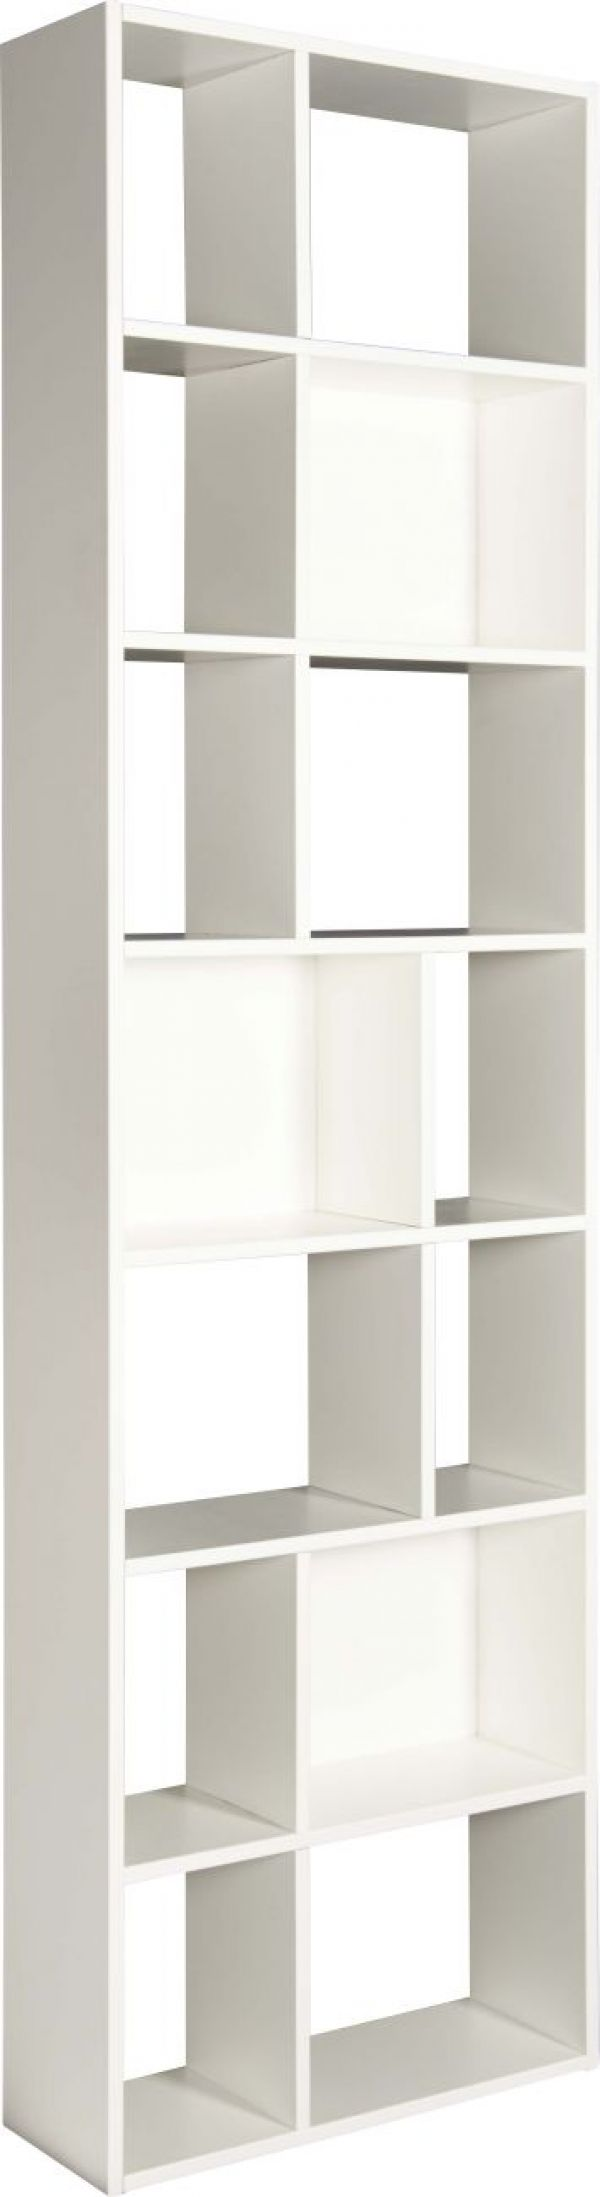 128 etagere murale profondeur 30 cm etagere bois profondeur 20 cm etagere murale 30 cm. Black Bedroom Furniture Sets. Home Design Ideas